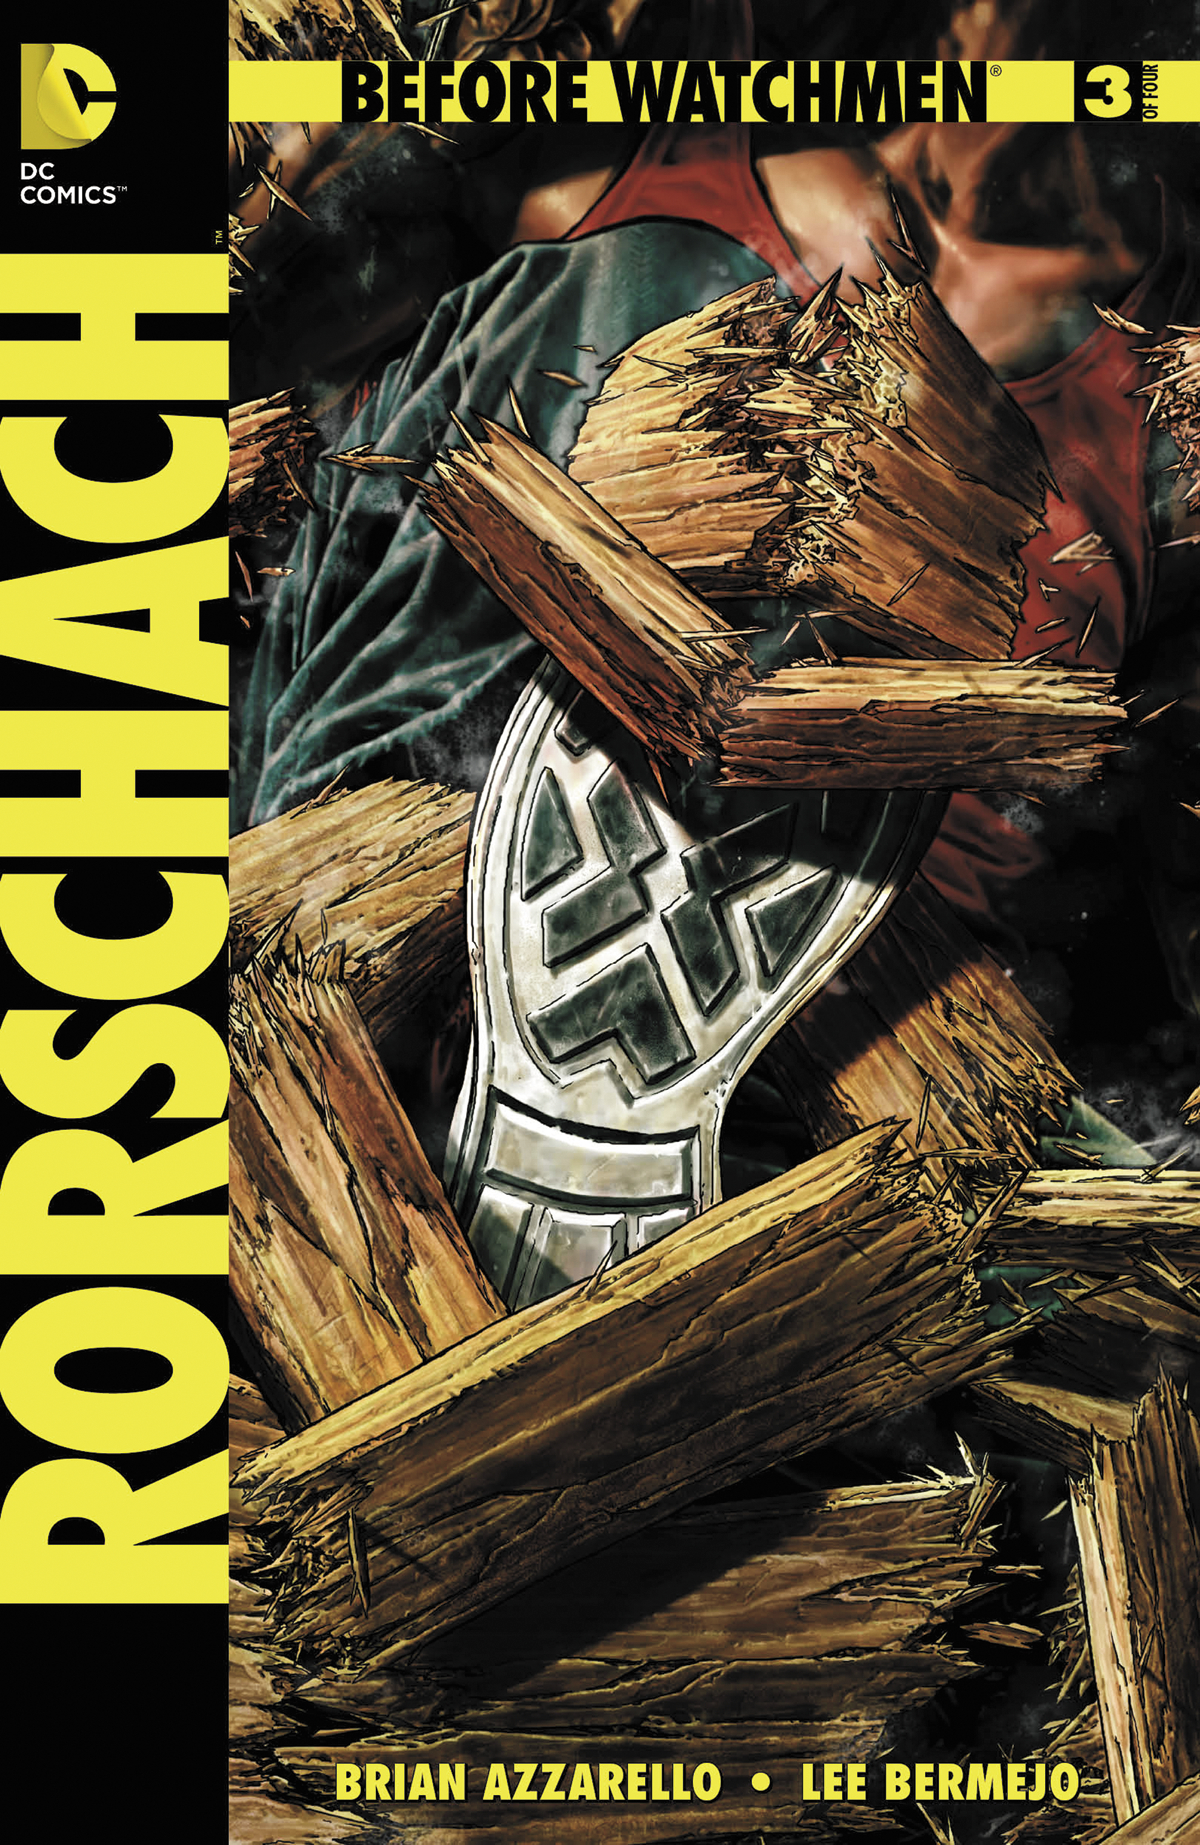 BEFORE WATCHMEN RORSCHACH #3 (OF 4) COMBO PACK